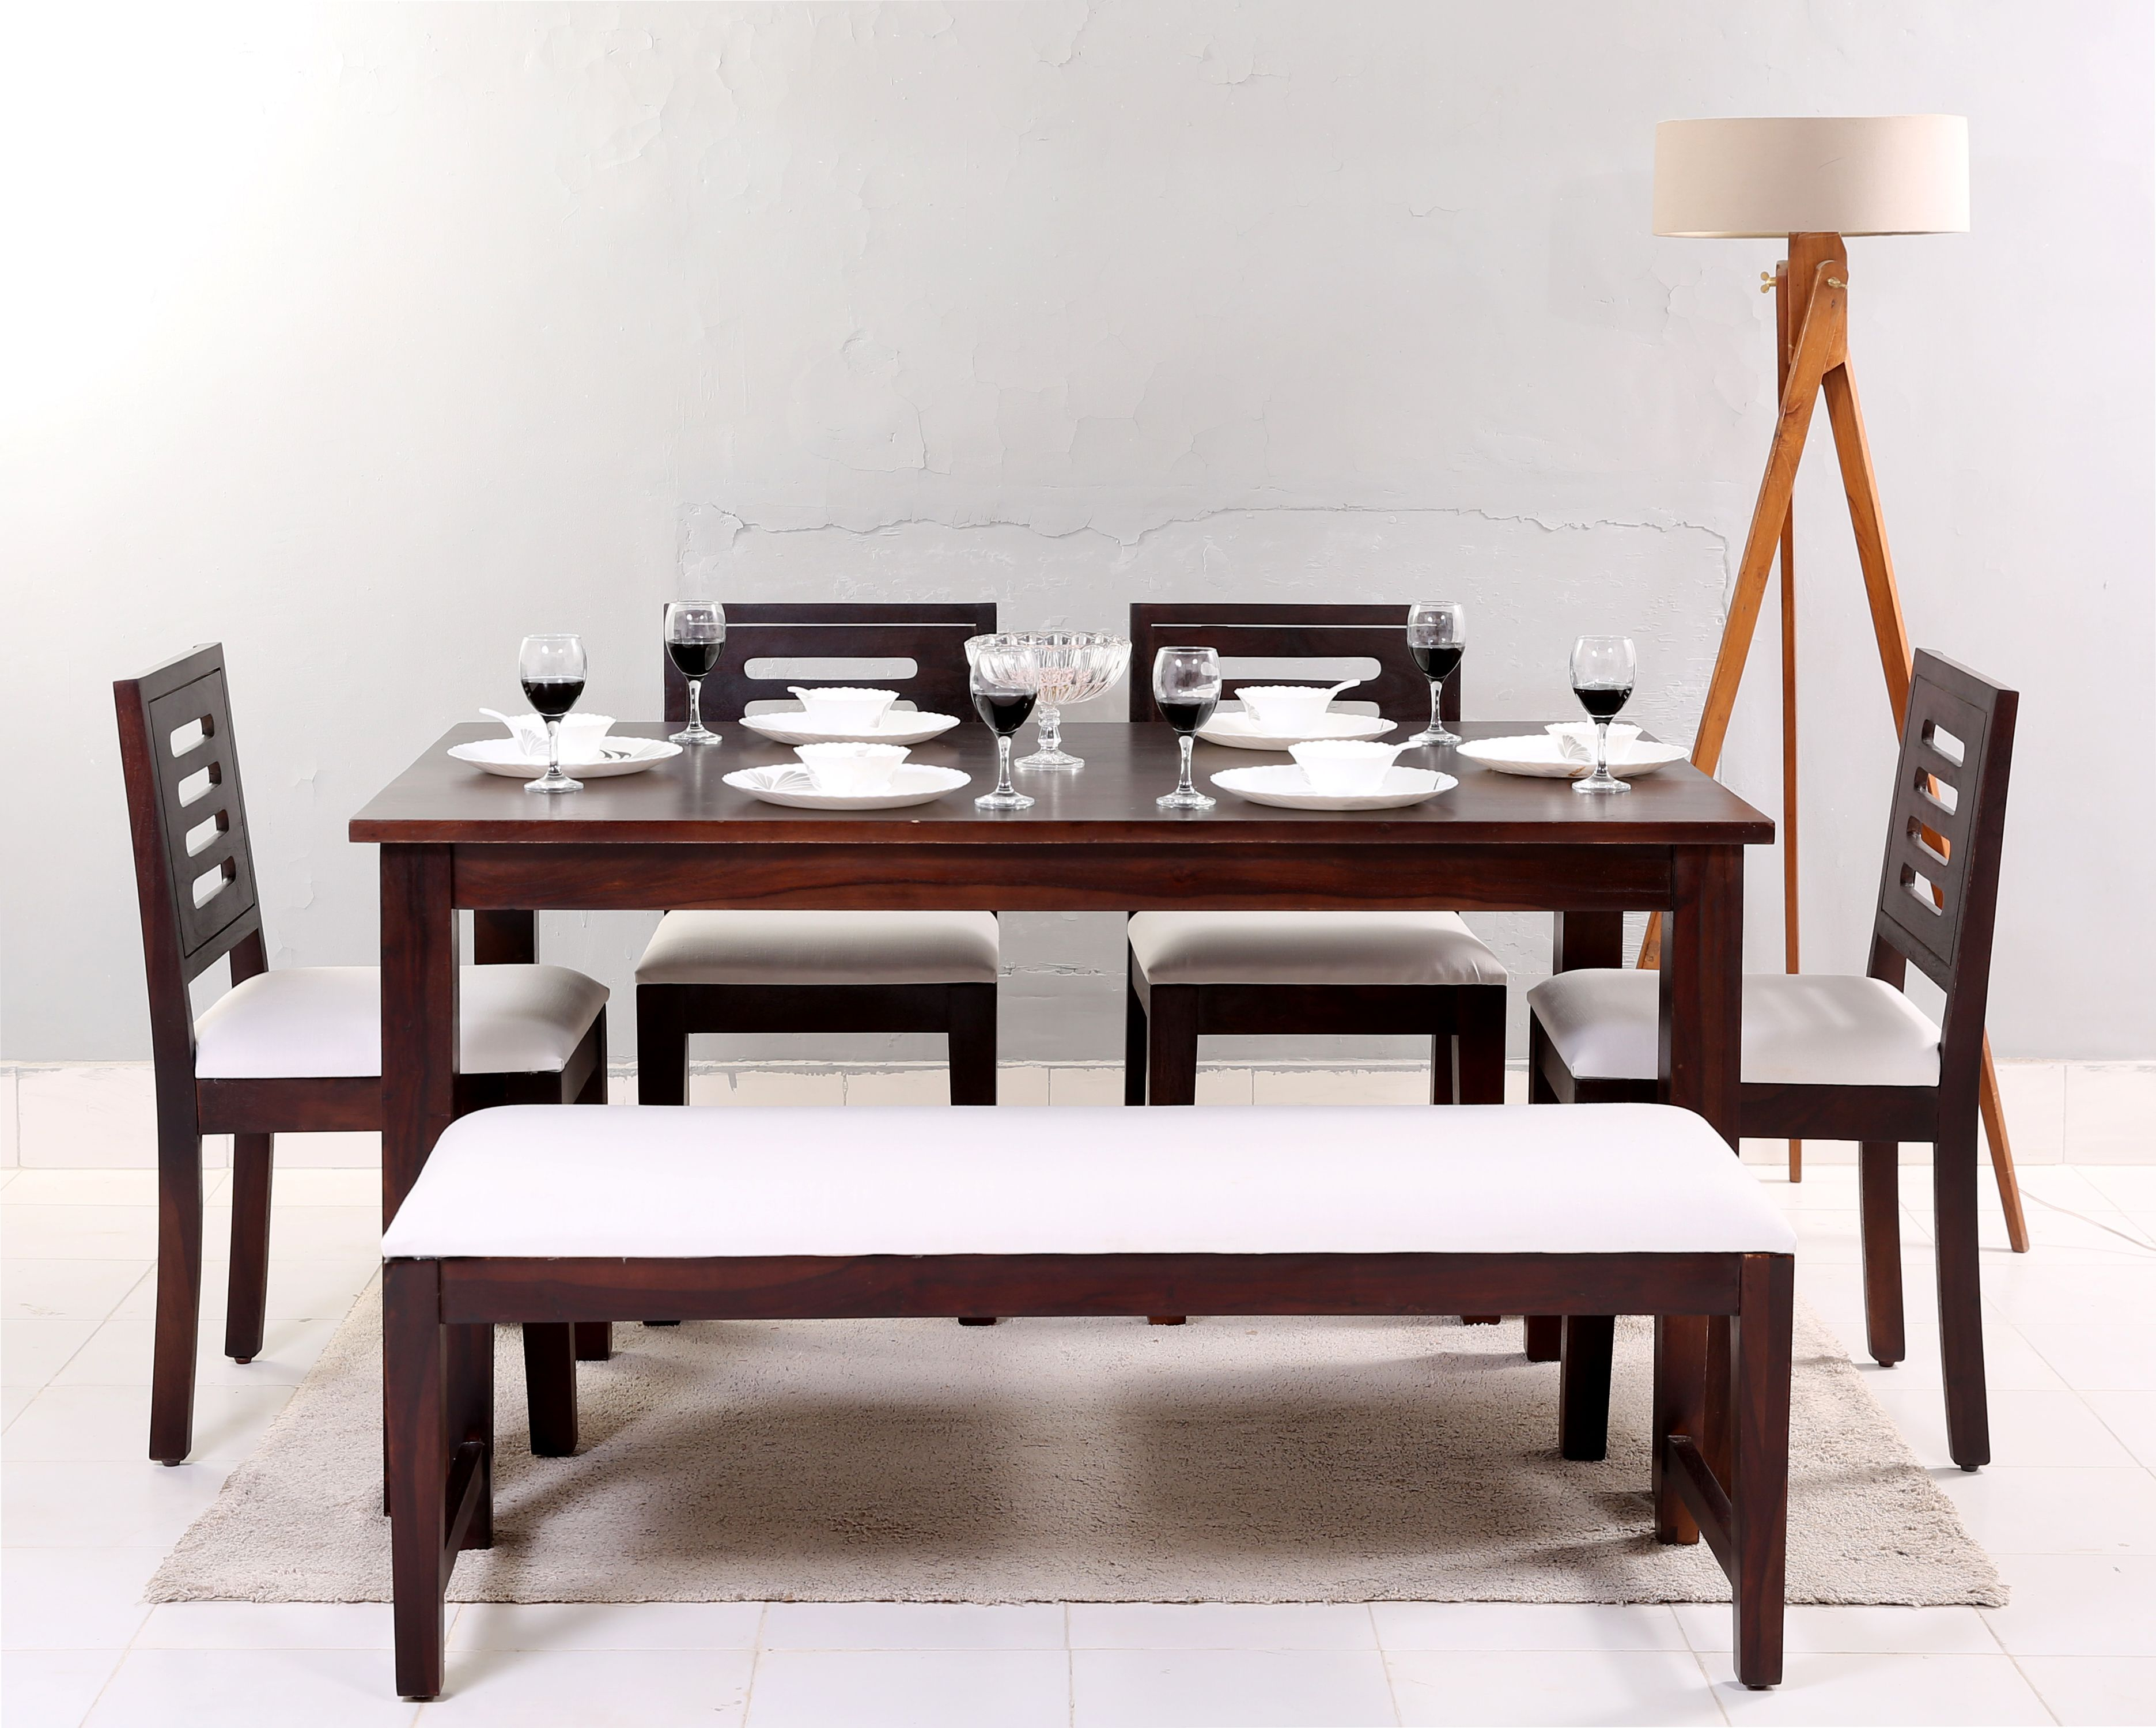 Give A Simple And Royal Look To Your Dining Space With The Systematically And Beauti Dining Room Table Set Wooden Dining Room Table Cheap Dining Room Table